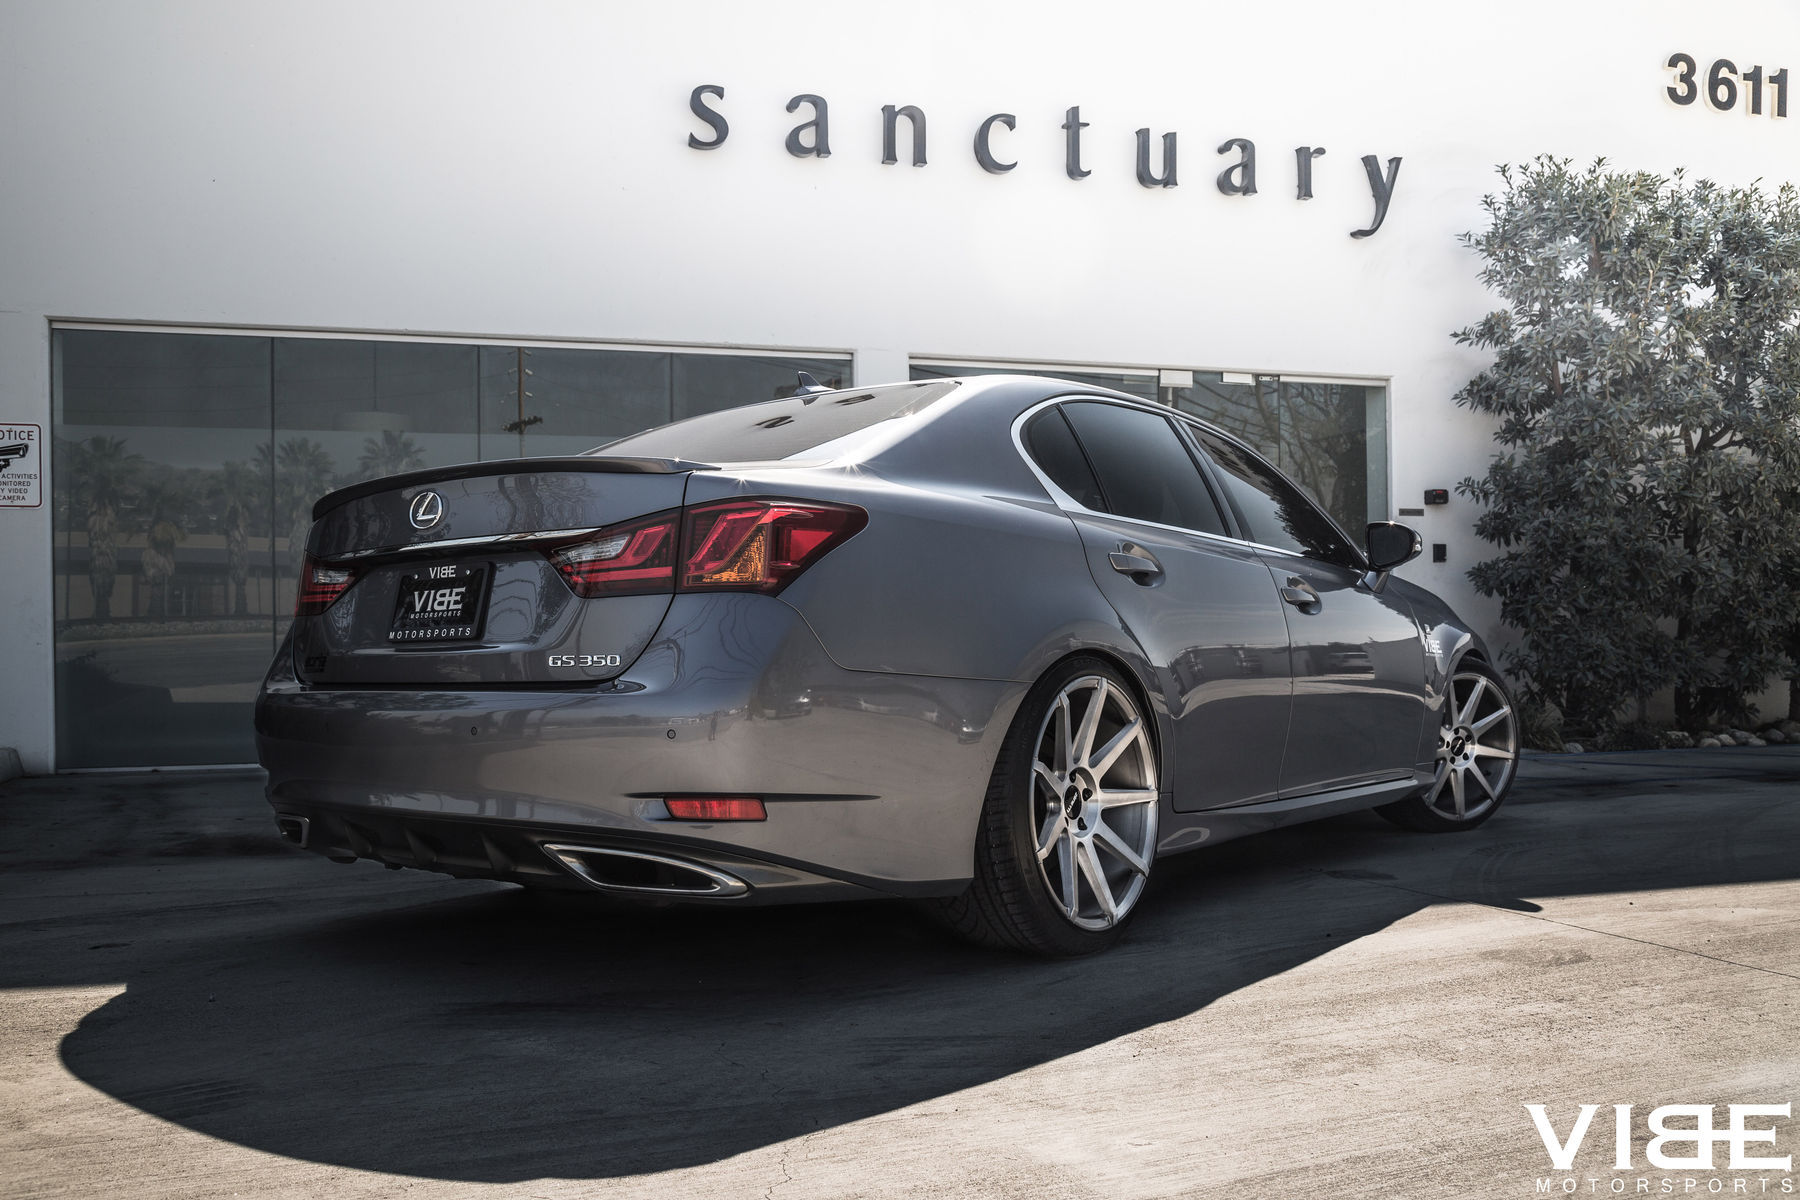 2015 Lexus GS 350 | Lexus GS350 F Sport Rocking The 20